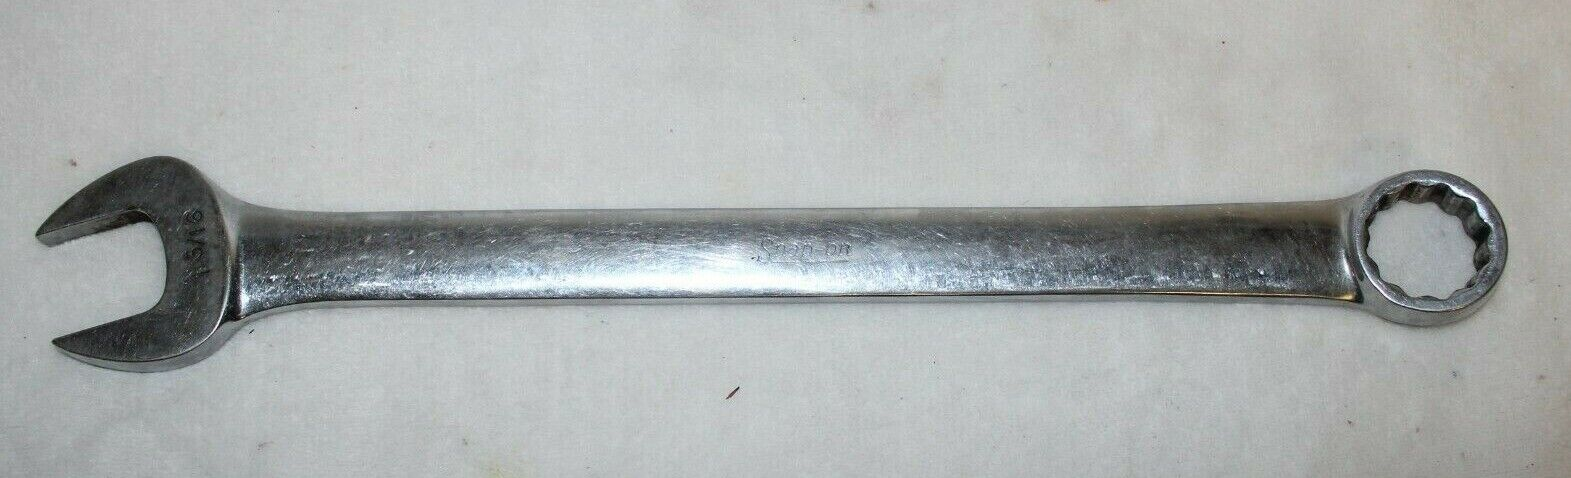 SNAP-ON OEX38 COMBINATION WRENCH 1 3/16